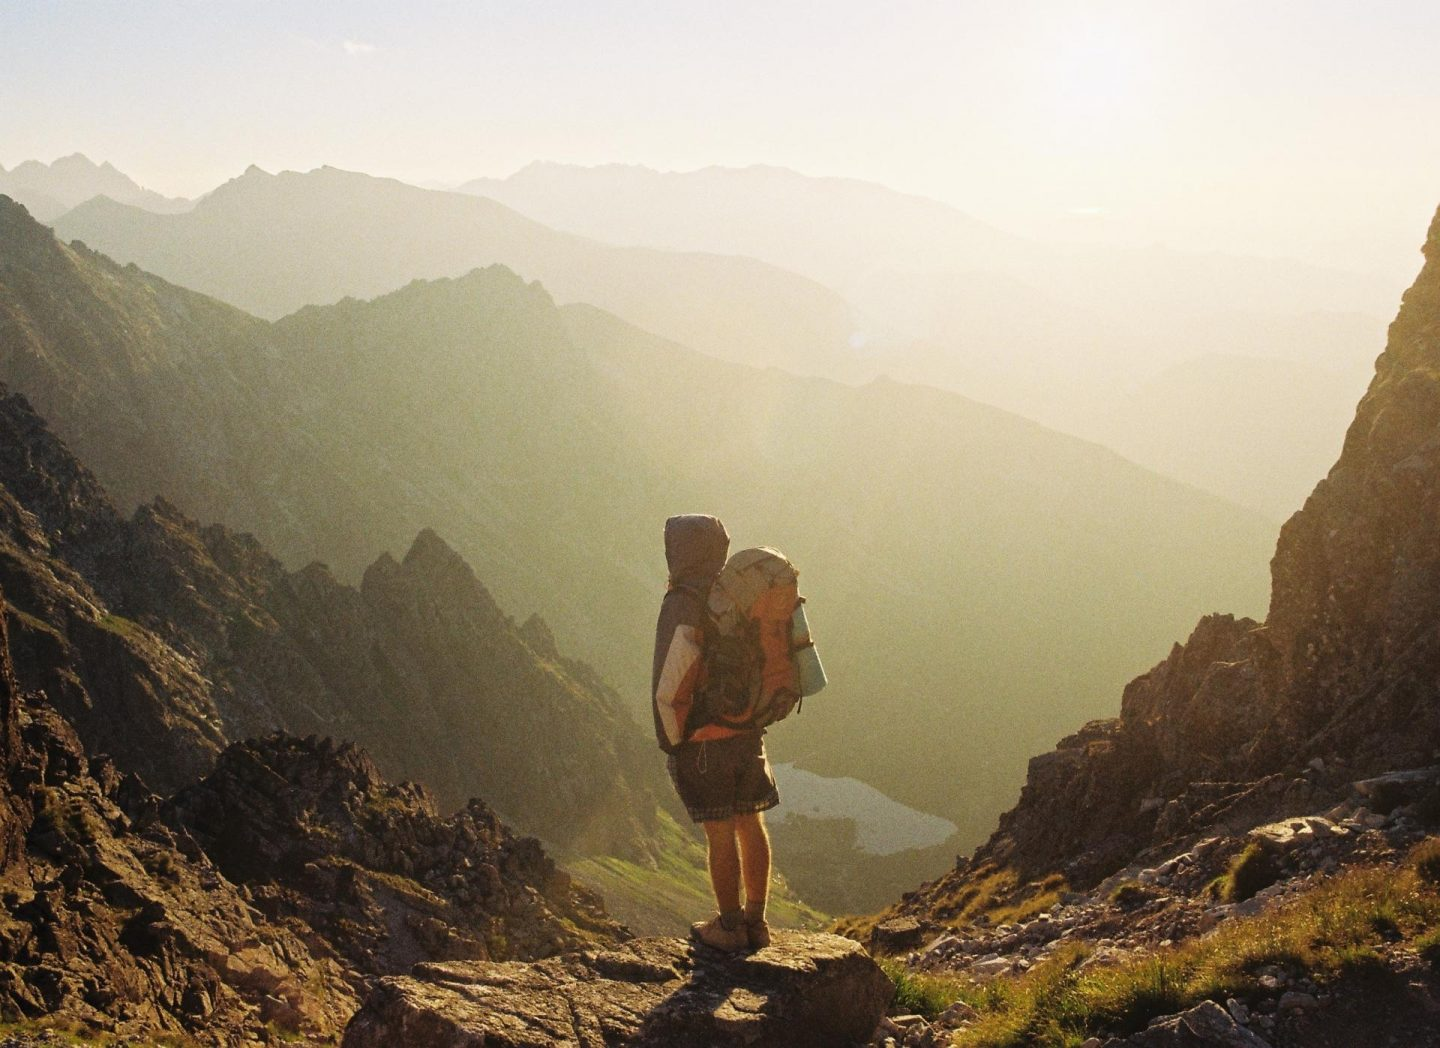 backpacking packing list   The Girl Outdoors